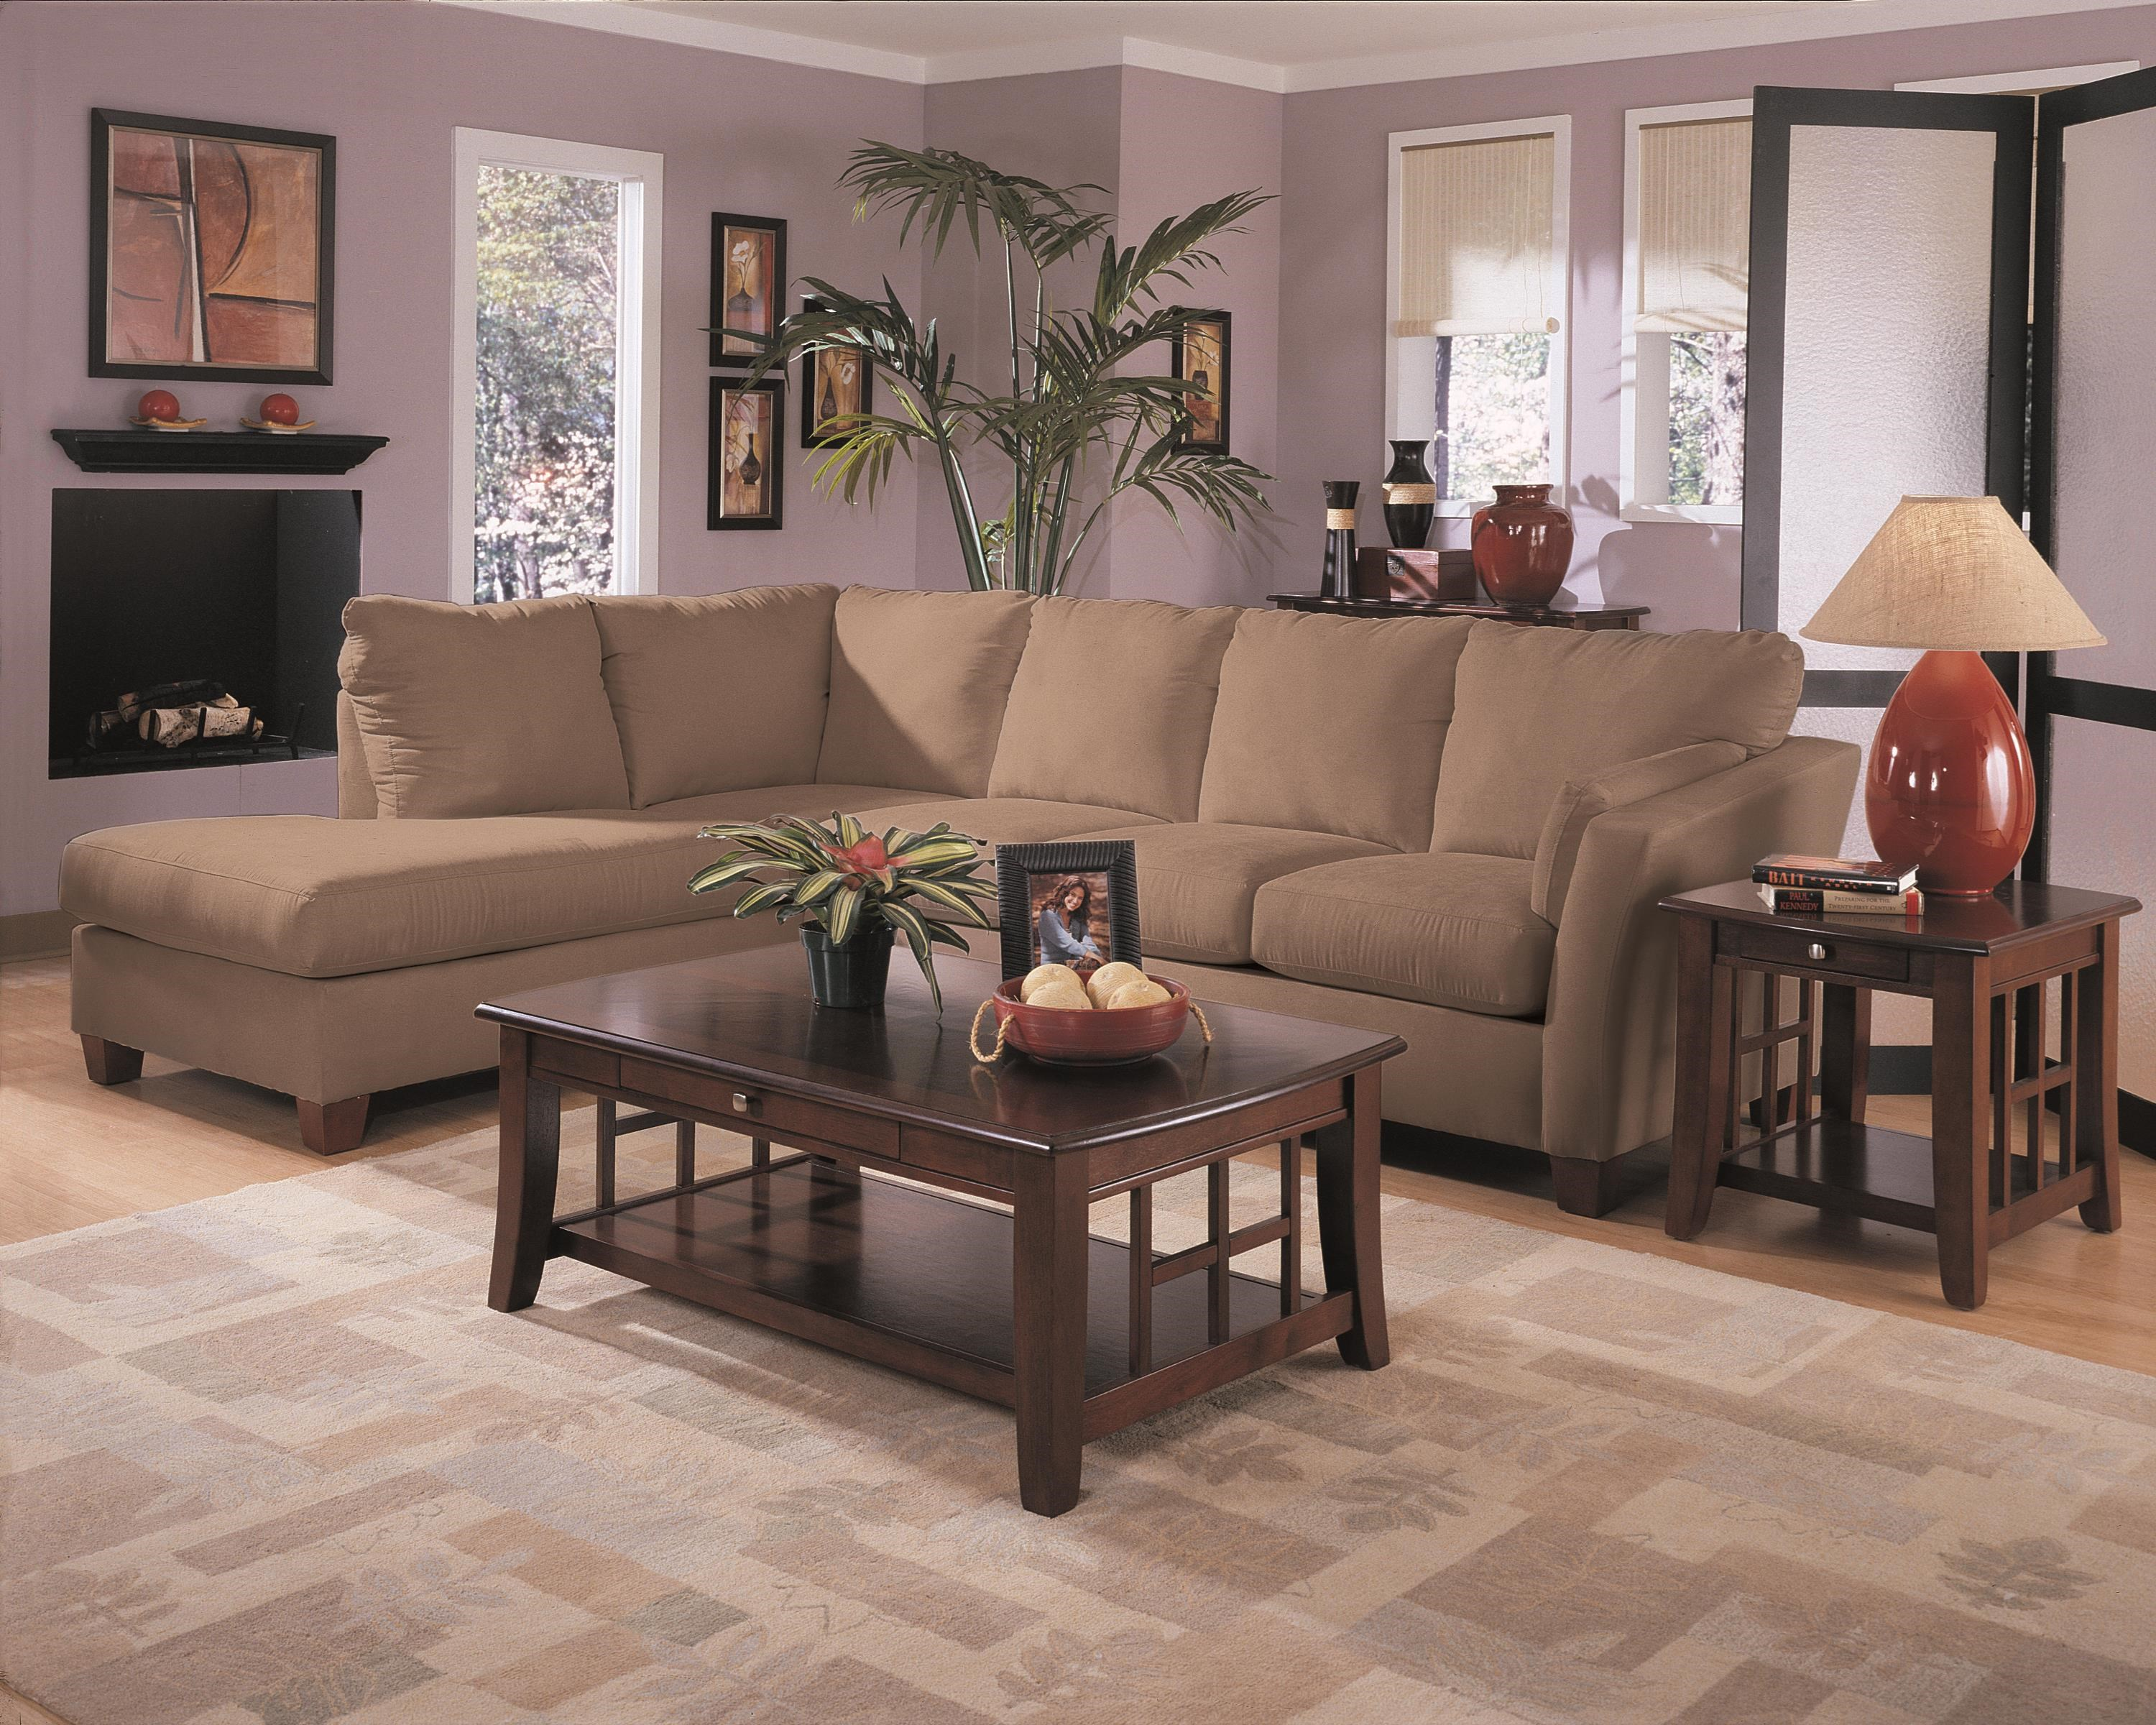 Klaussner Drew 2-Piece Sectional  - Item Number: E16LCHASE+E16RS-LibreEarth